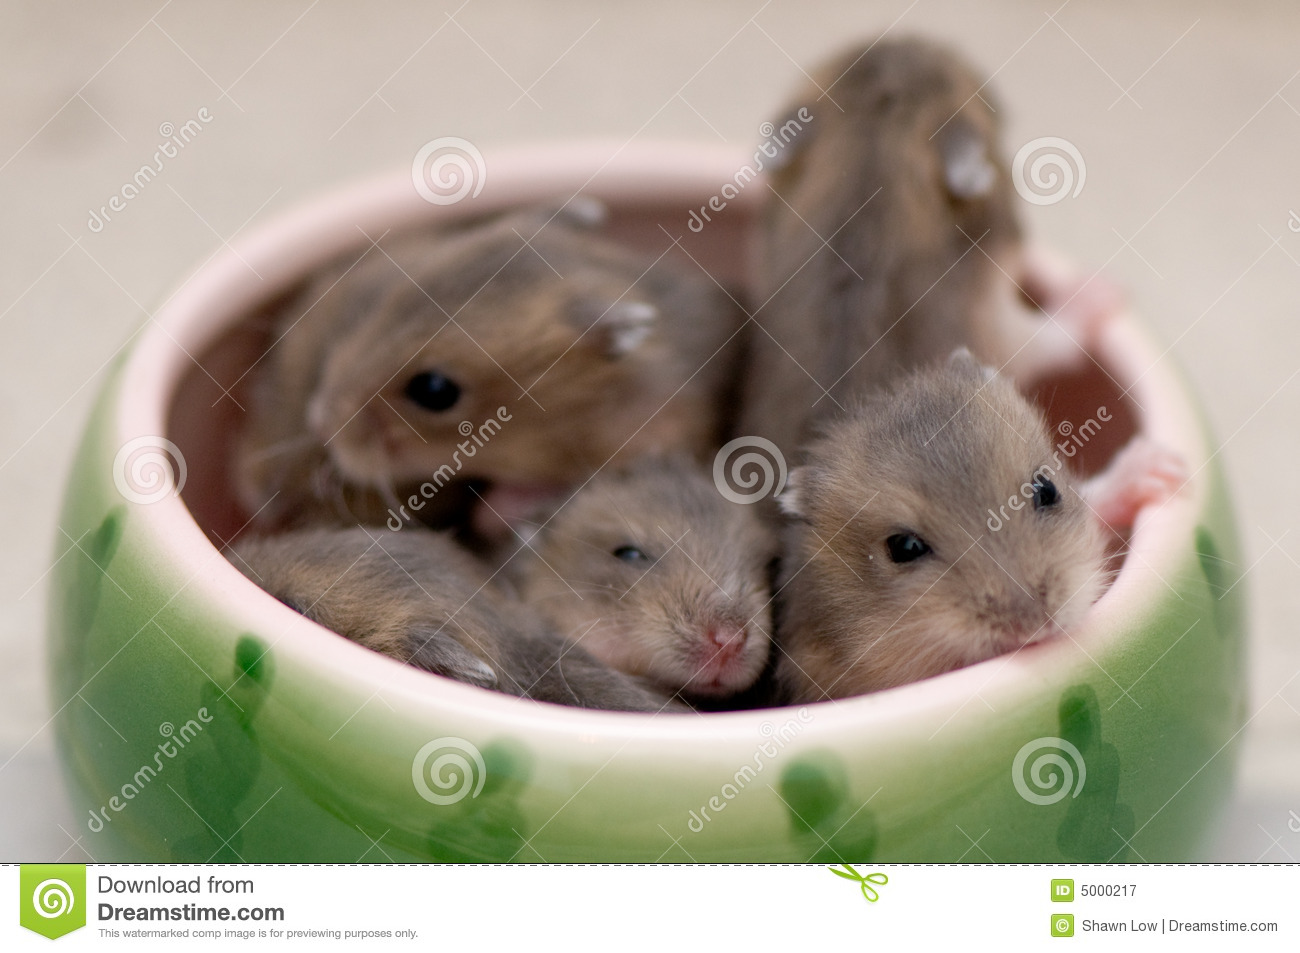 Dwarf hamster babies who are 5 weeks old, playing around in watermelon ...